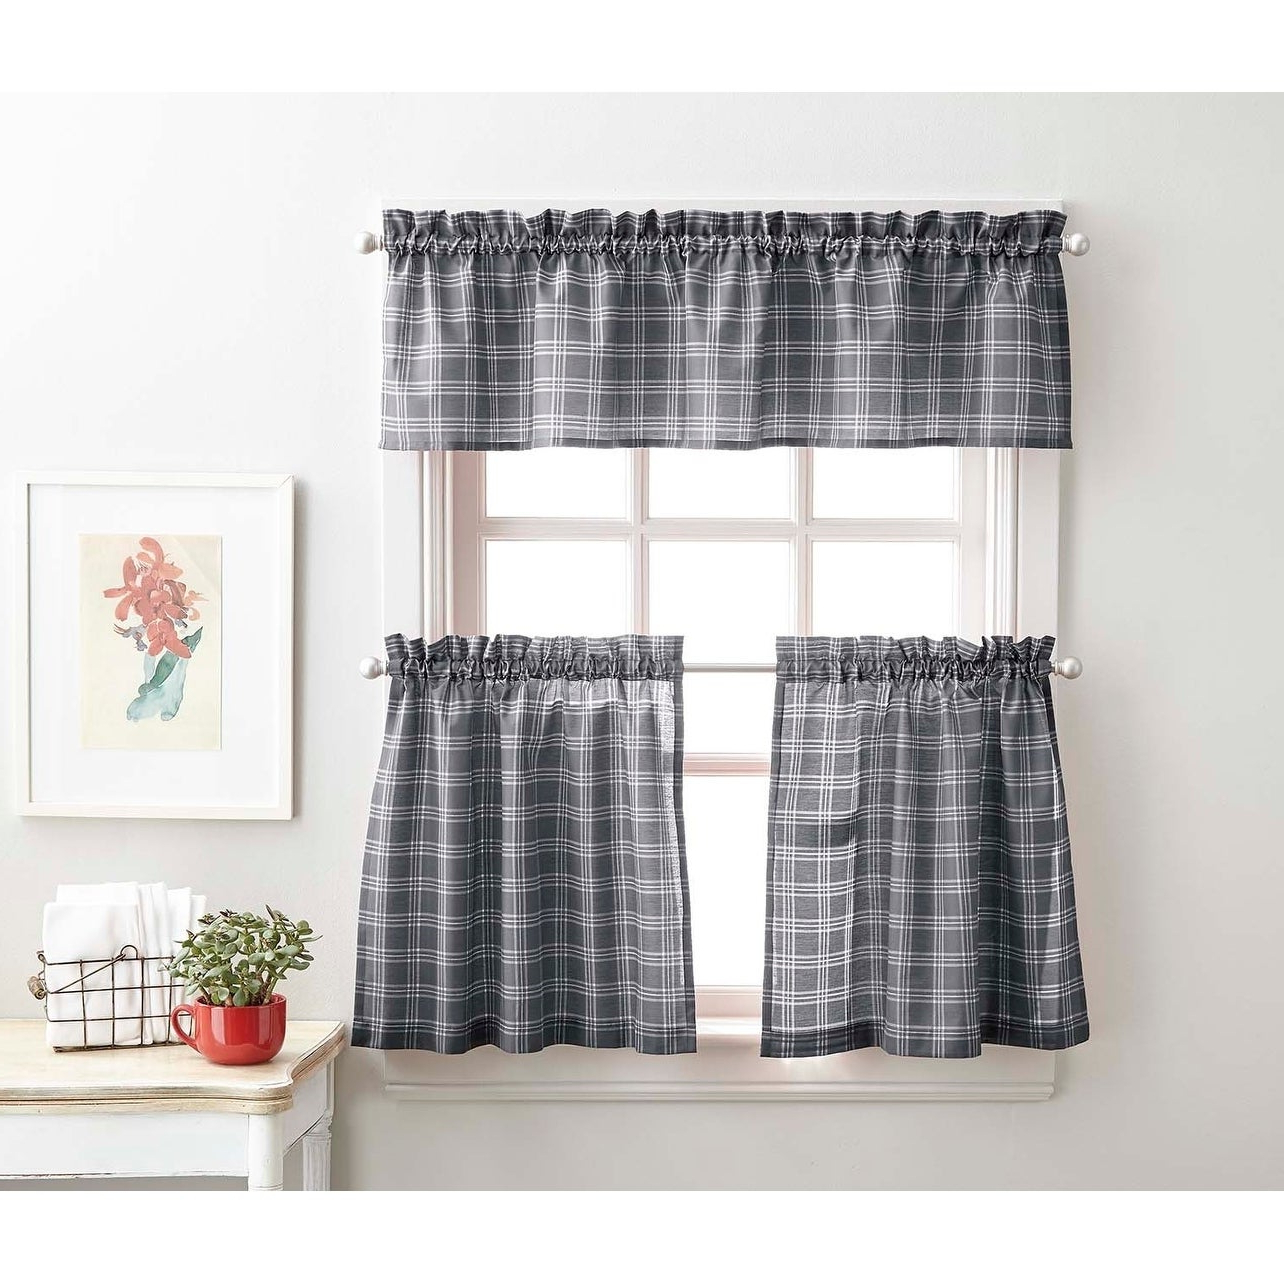 """Trendy Cottage Ivy Curtain Tiers Throughout Lodge Plaid 3 Piece Kitchen Curtain Tier And Valance Set – 36"""" 3pc Set (View 19 of 20)"""